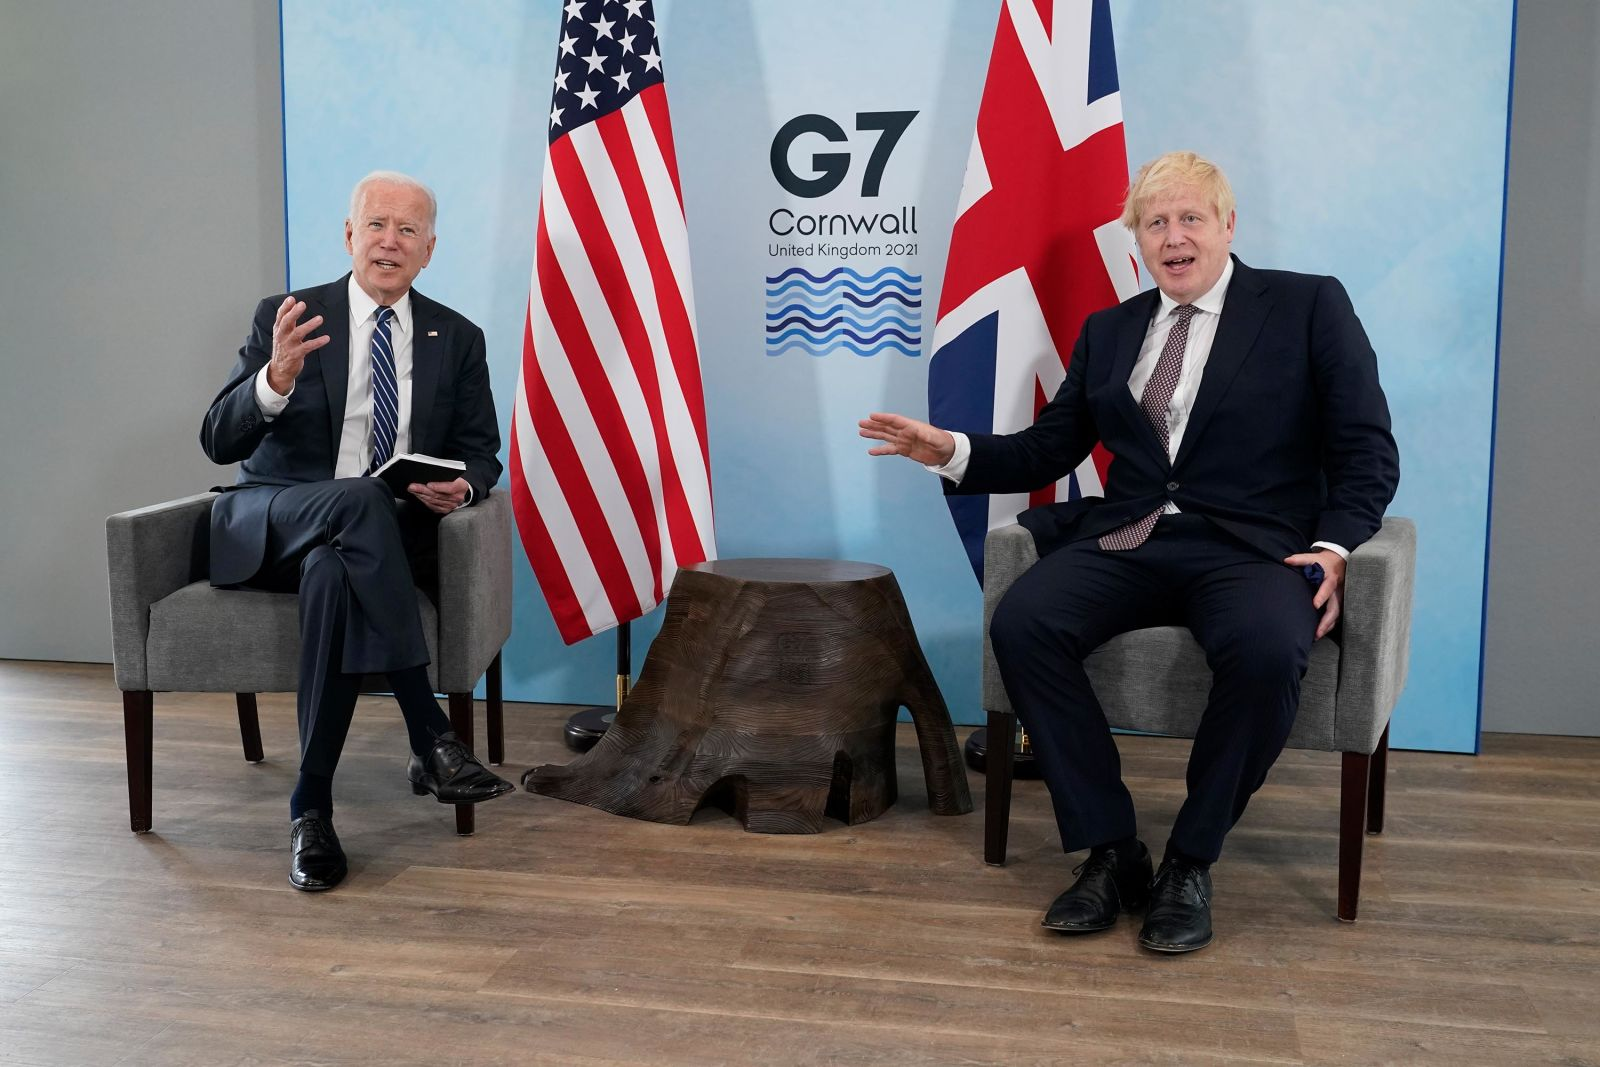 Biden meets with British Prime Minister Boris Johnson on Thursday in Carbis Bay, England, ahead of the G7 summit.